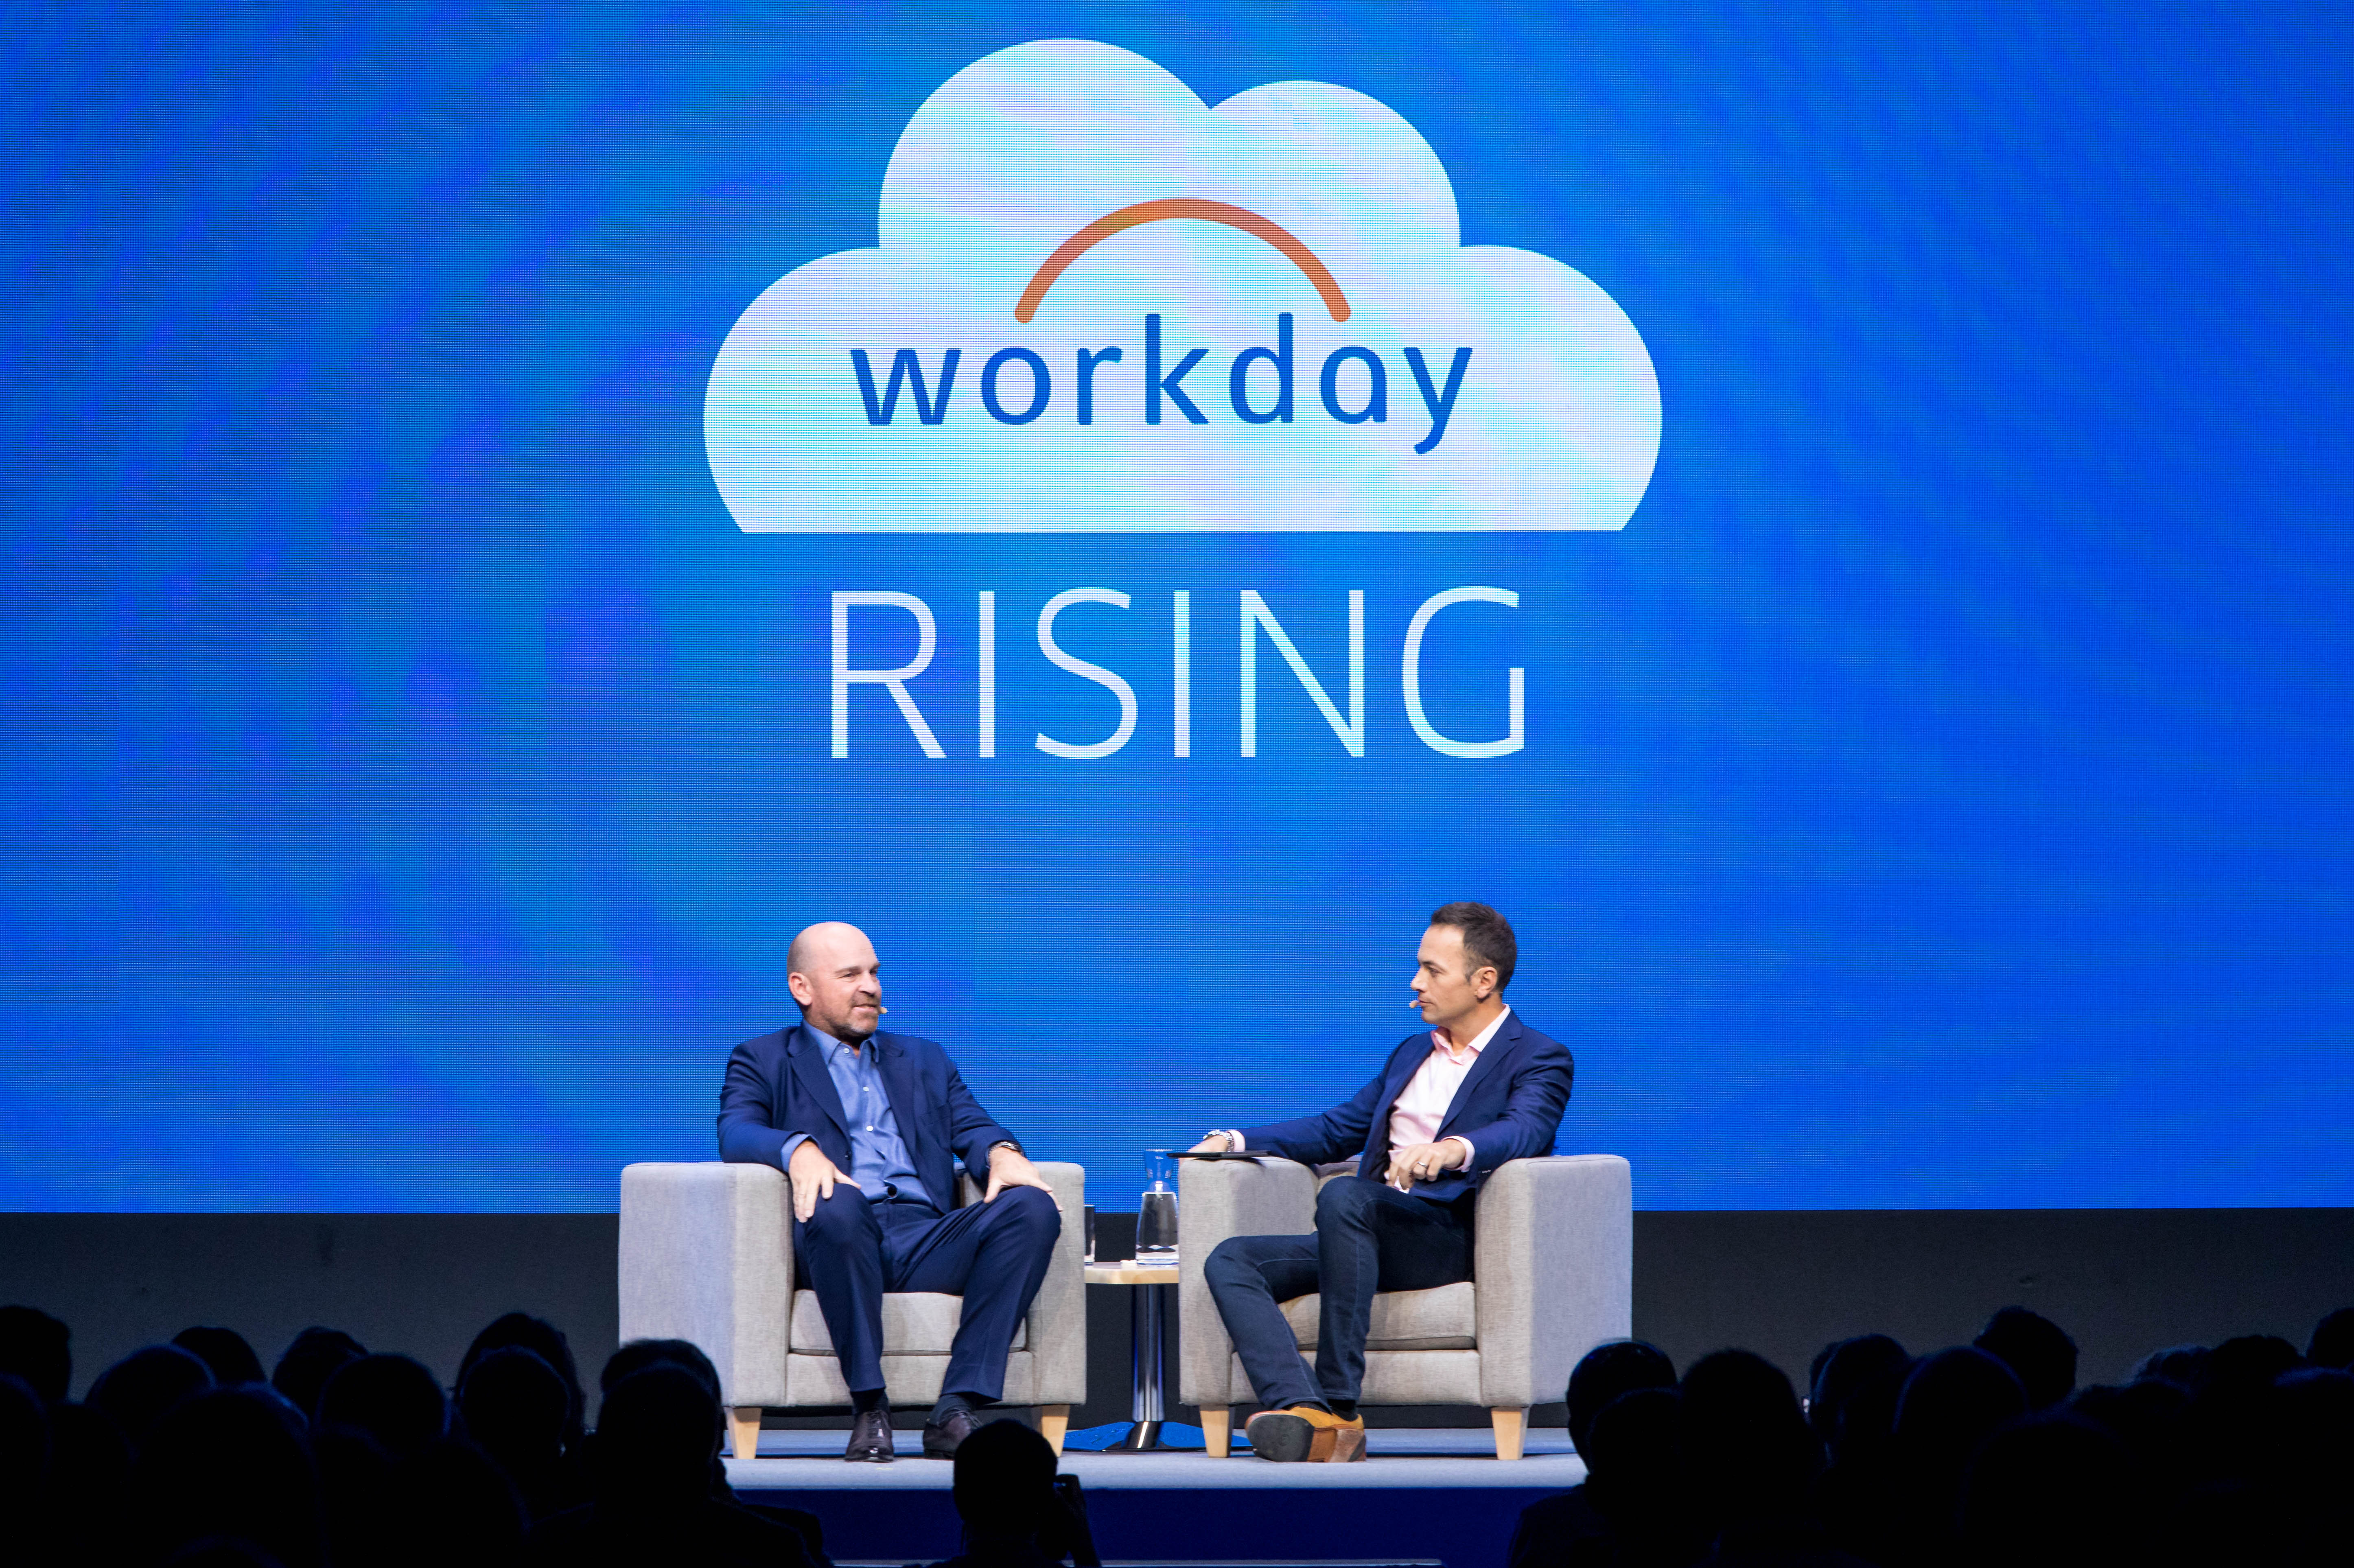 Golfers Thomas Bjorn and Nick Dougherty at Workday Rising Europe.